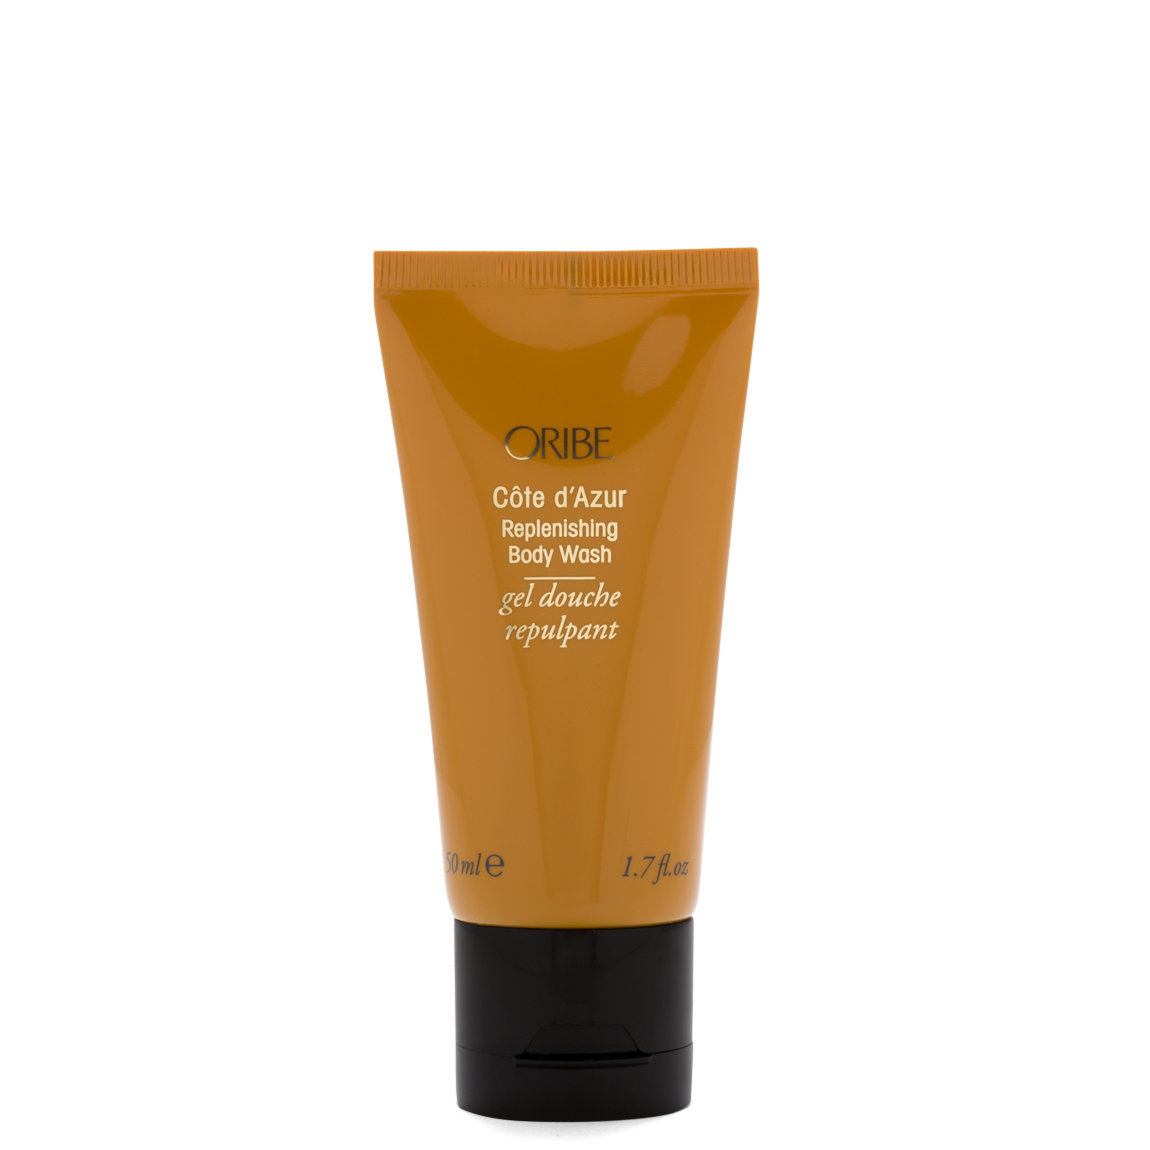 Oribe Côte d'Azur Replenishing Body Wash 1.7 oz product swatch.